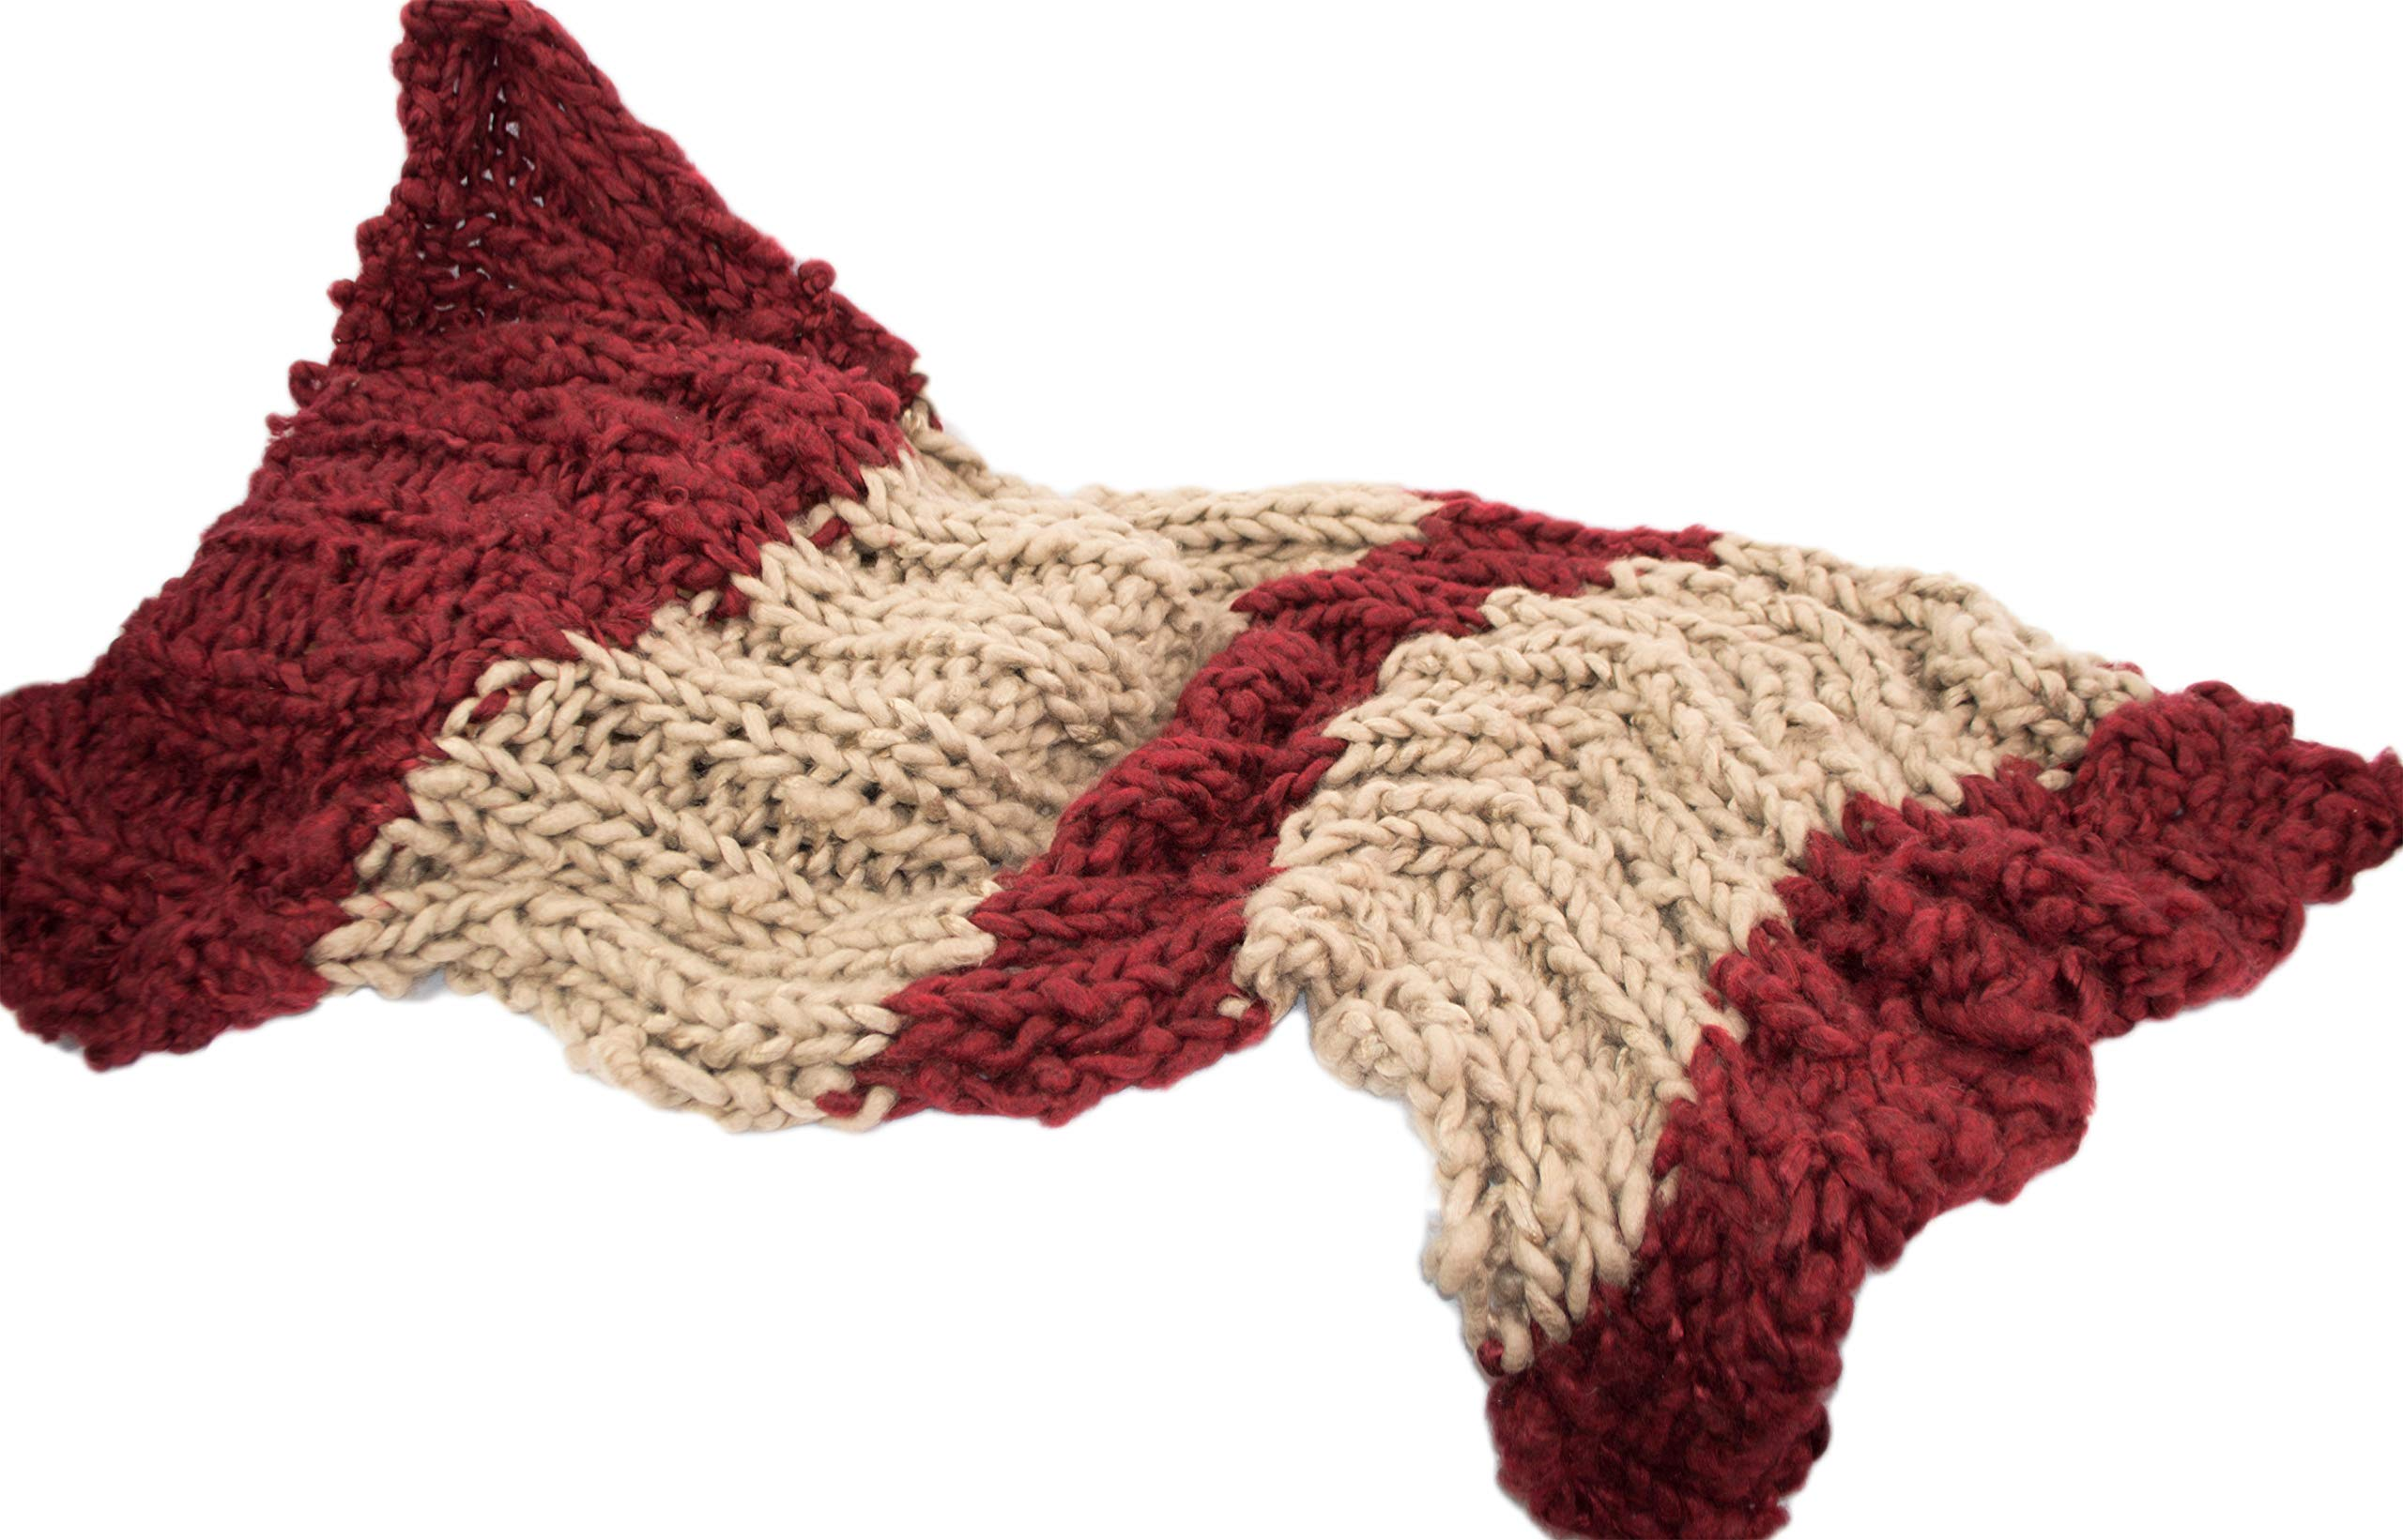 Large Chunky Throw Blanket DIY Knit Kit, Super Soft Thick Yarn w/Large Wood Knitting Needles US 50 Set (Burgundy & Taupe) by Rising Phoenix Industries (Image #2)